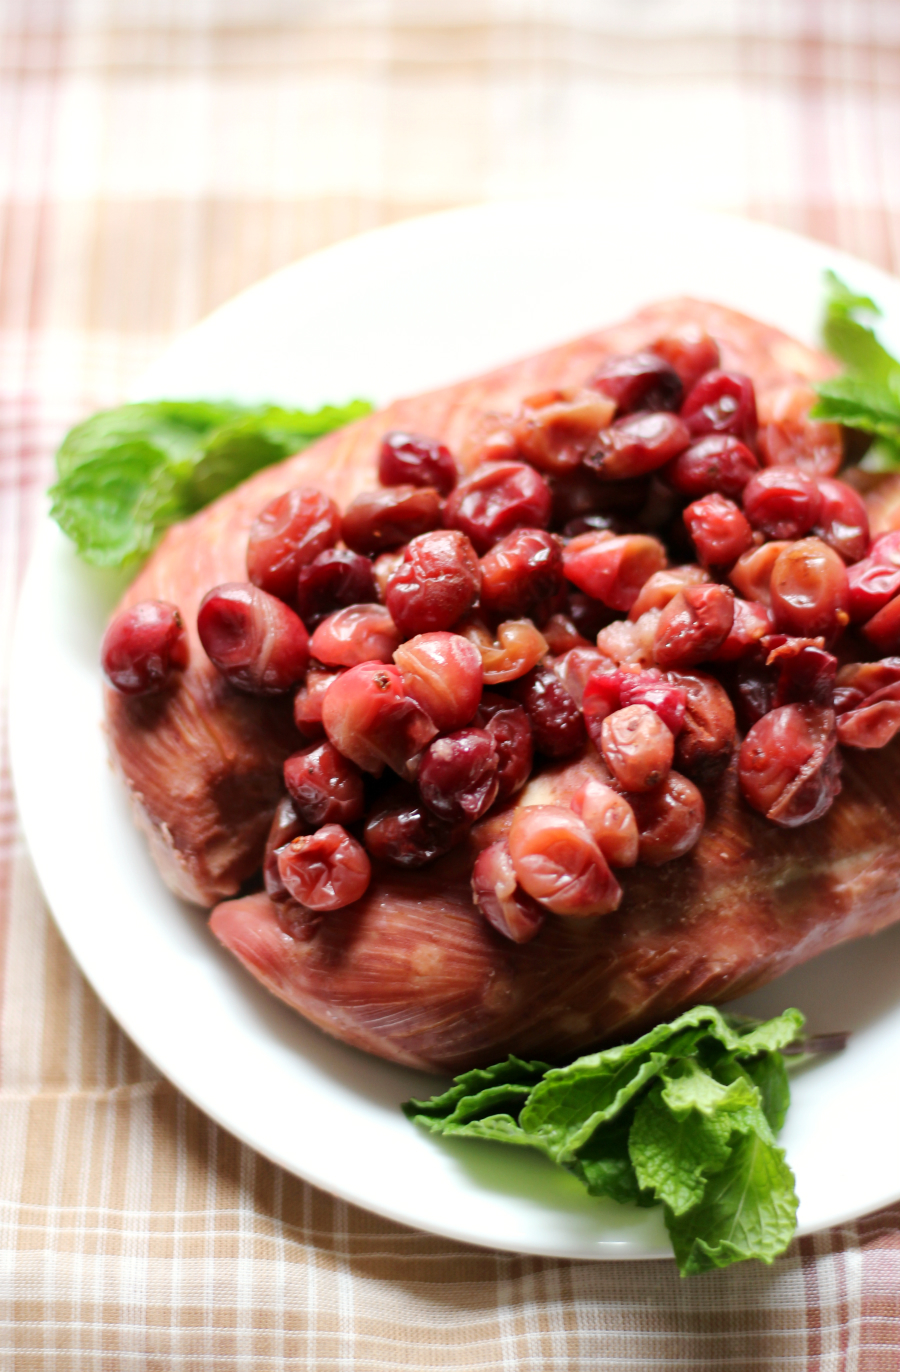 Slow Cooker Cranberry Chicken | Strength and Sunshine @RebeccaGF666 One of the easiest cold weather weeknight dinner recipes you can make! Slow Cooker Cranberry Chicken that's gluten-free, allergy-free, and paleo! Just 3 ingredients in the crockpot and you'll have a family with happy healthy bellies at dinnertime!